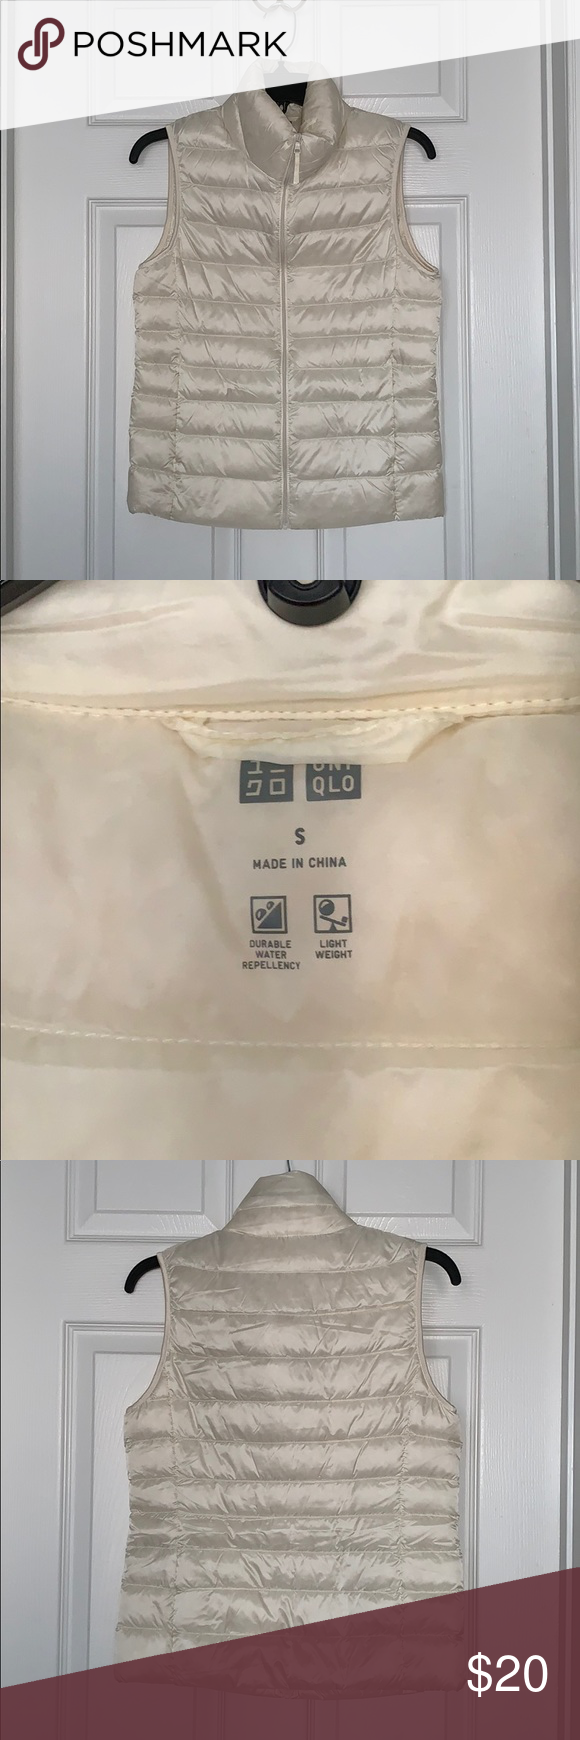 Uniqlo packable puffer vest Uniqlo jackets, Vest white